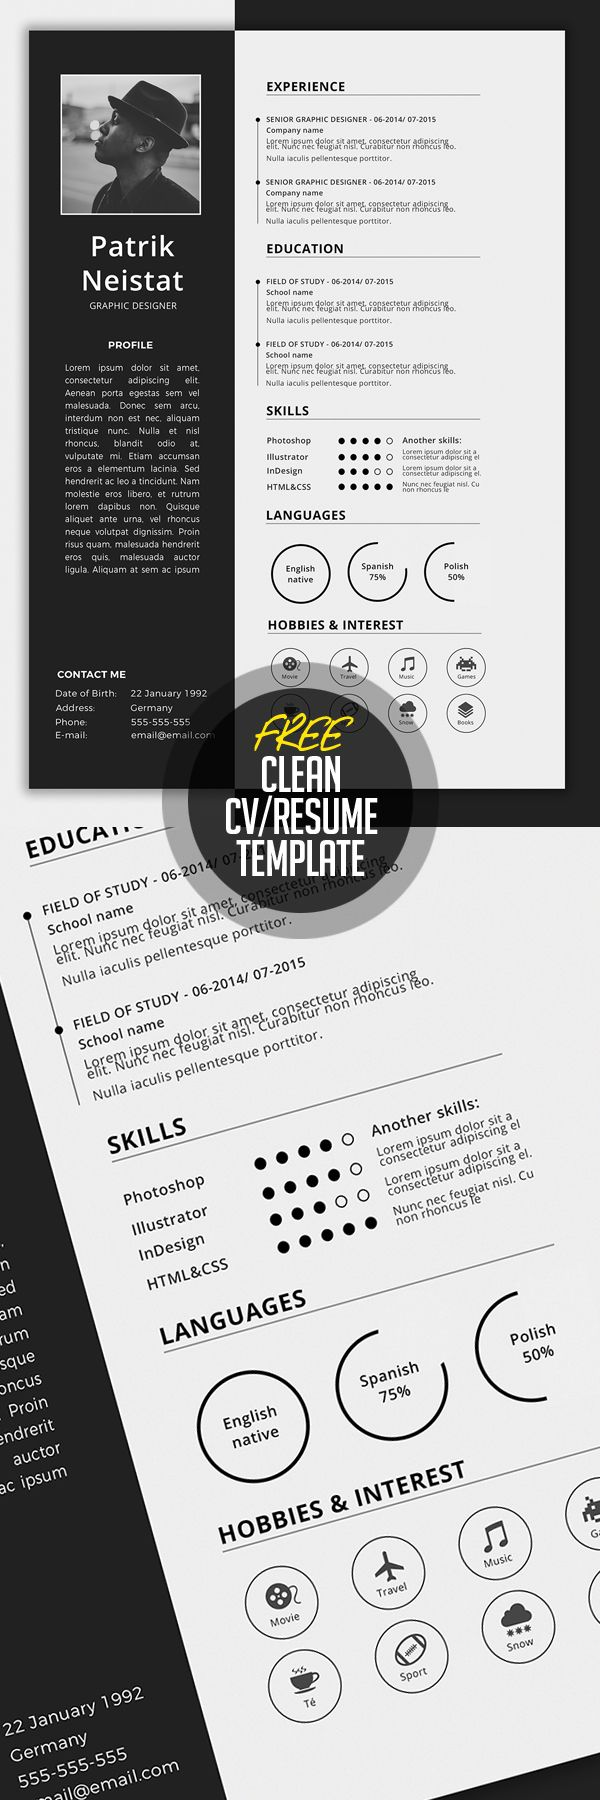 17 best ideas about resume resume professional resume templates designed a simple minimal and creative style to help any professional to make a lasting impression when applying